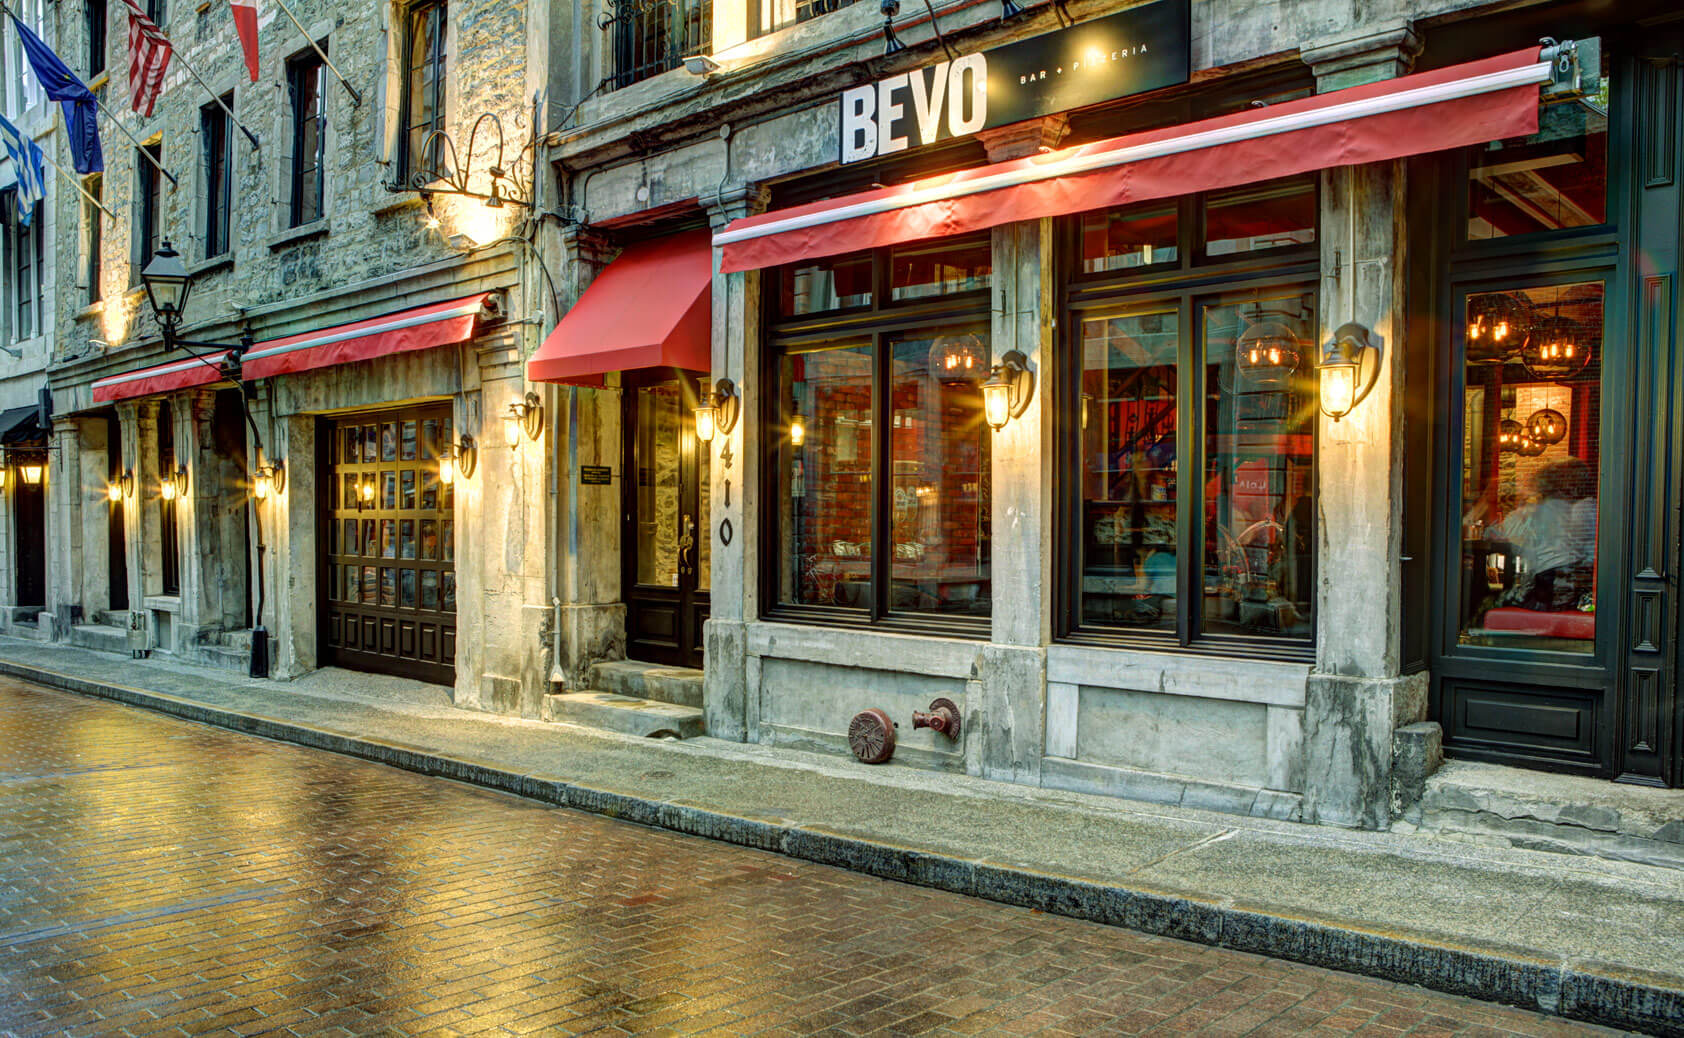 Bevo Bar + Pizzeria